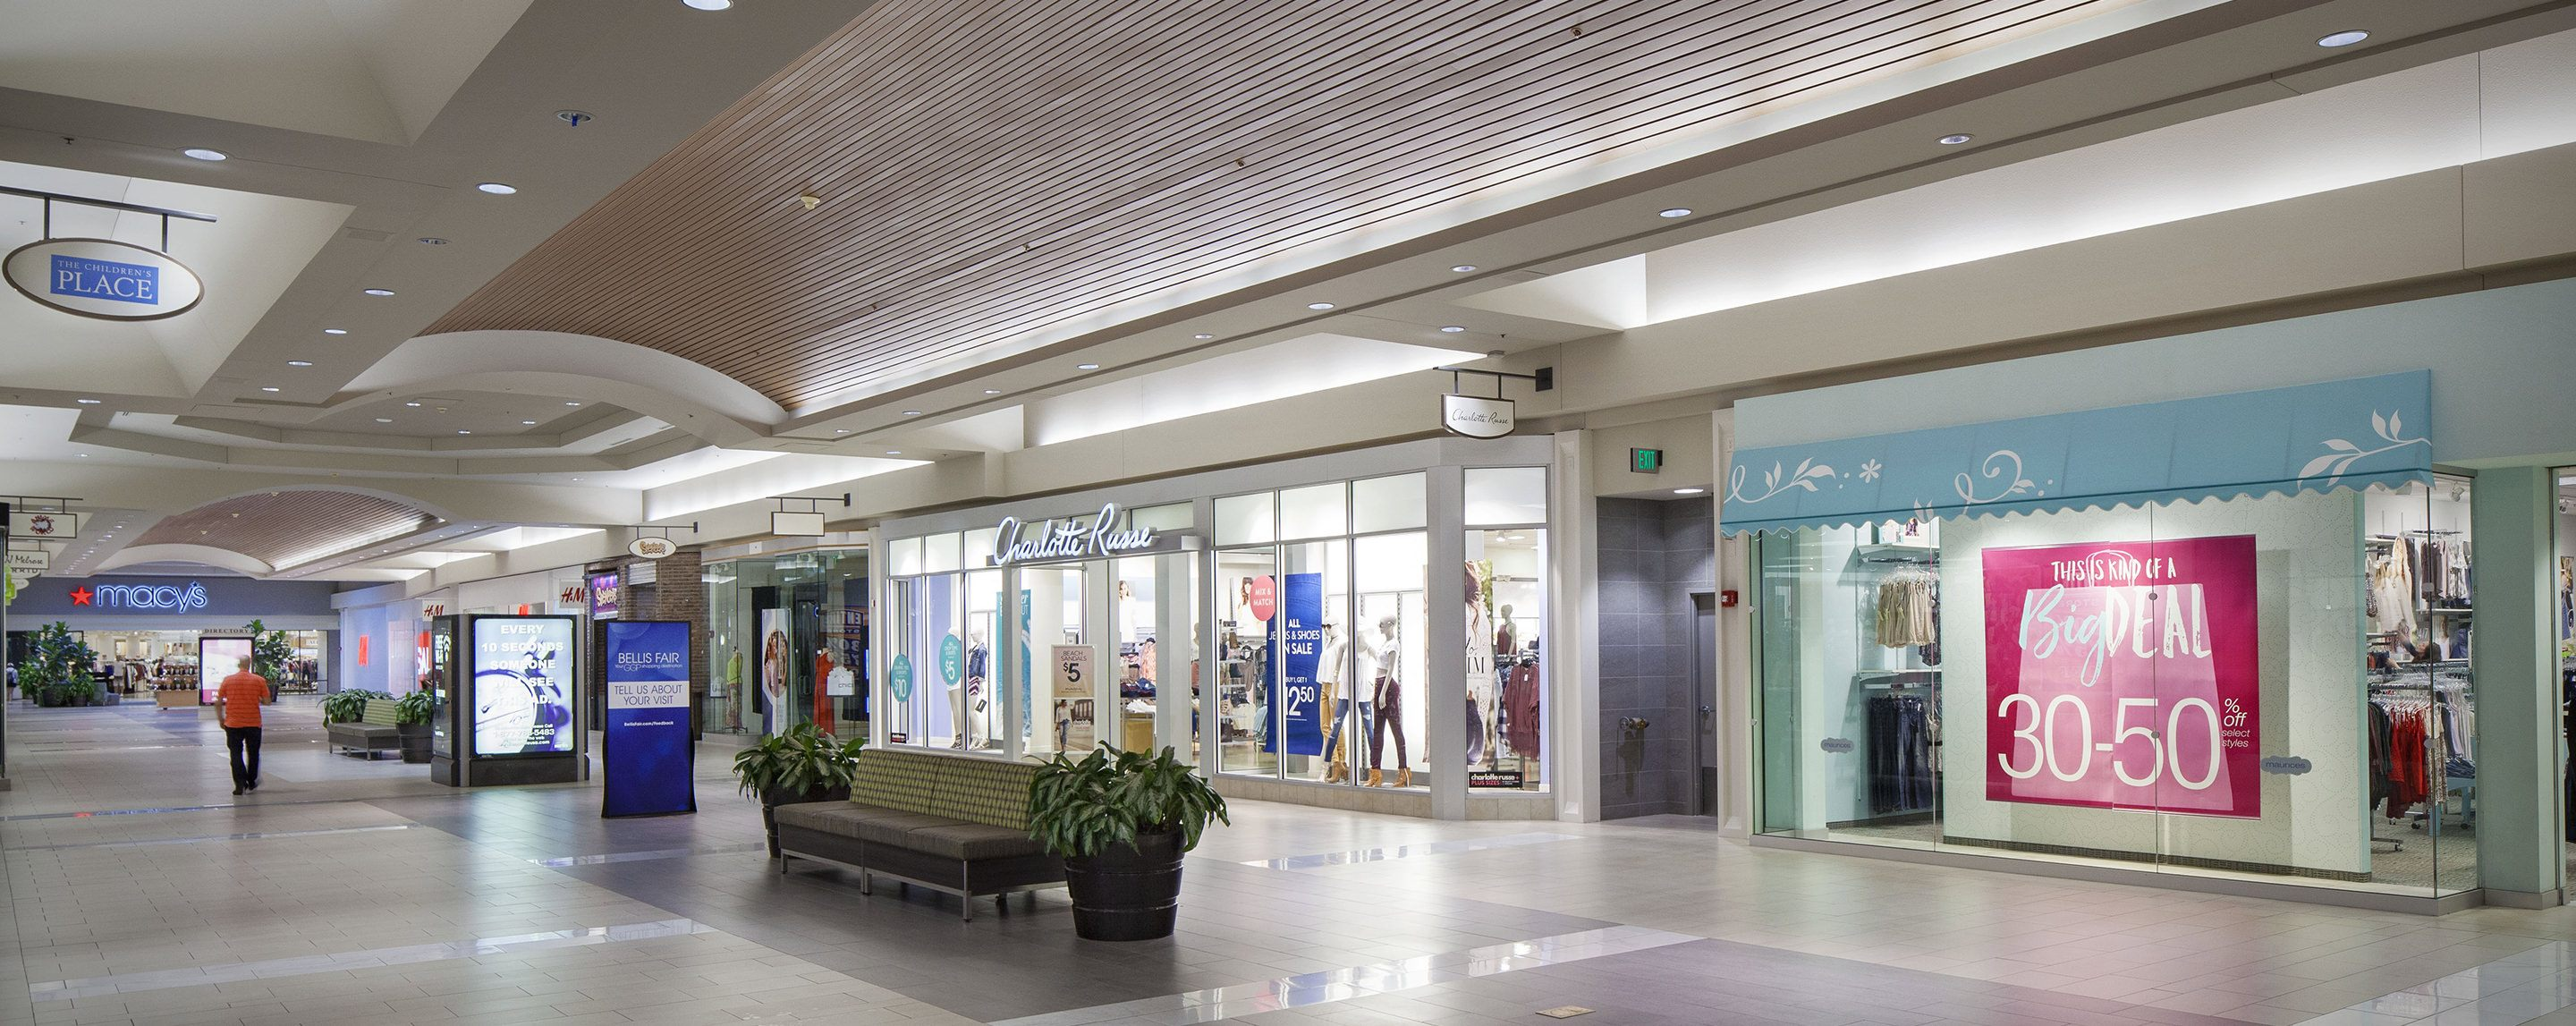 Stores such as Charlotte Russe and H.M.  can be seen in a hall of an indoor mall with a Macy's store at the end.